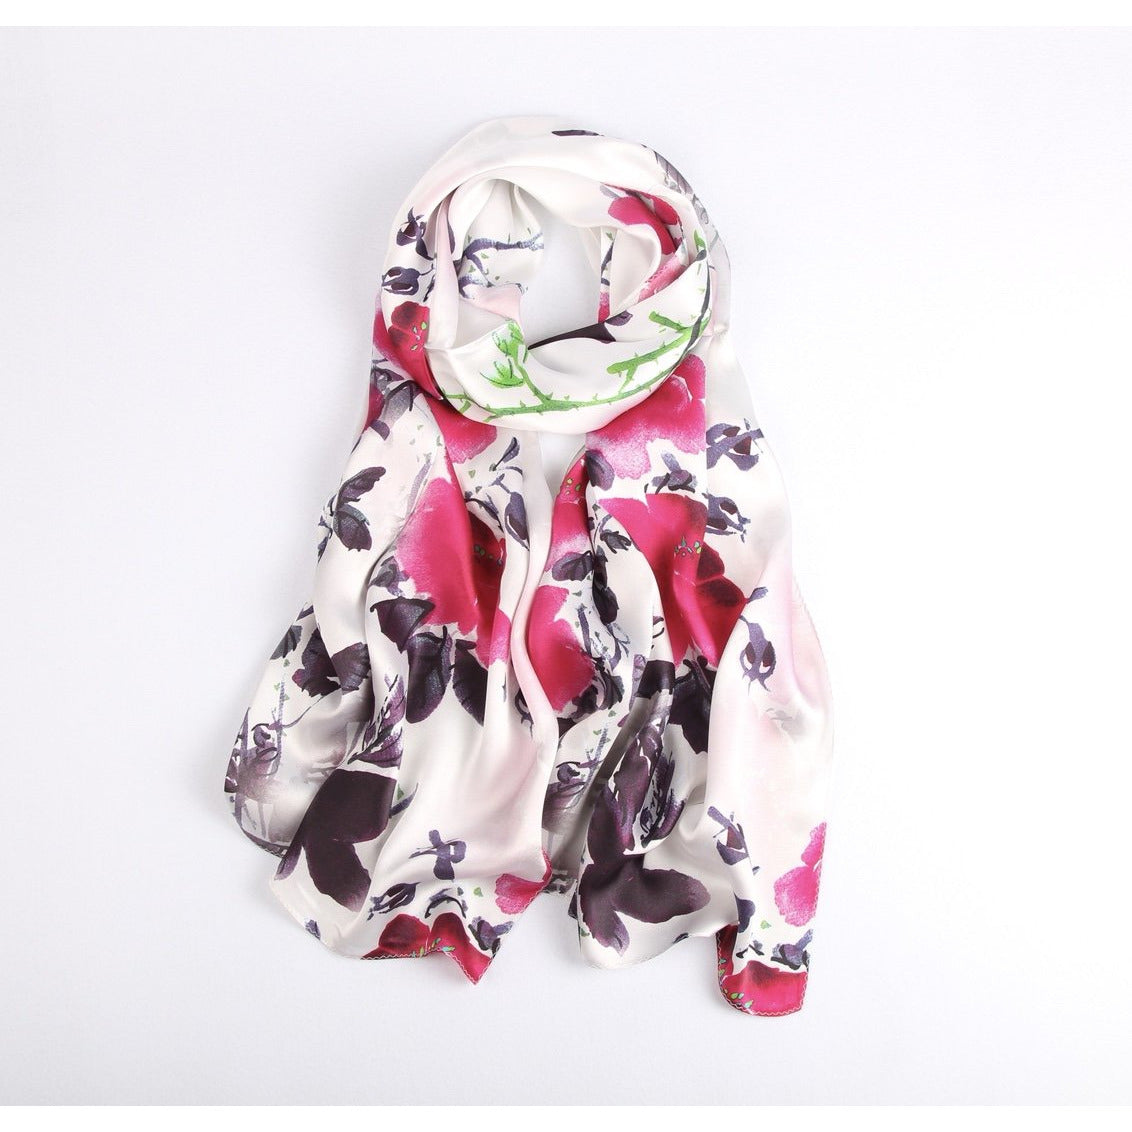 Vshine Silk and Shine Fashion Accessories|Silk Scarf Collecitons|Blossom Range|Water Paint|Red|Long Silk Scarf